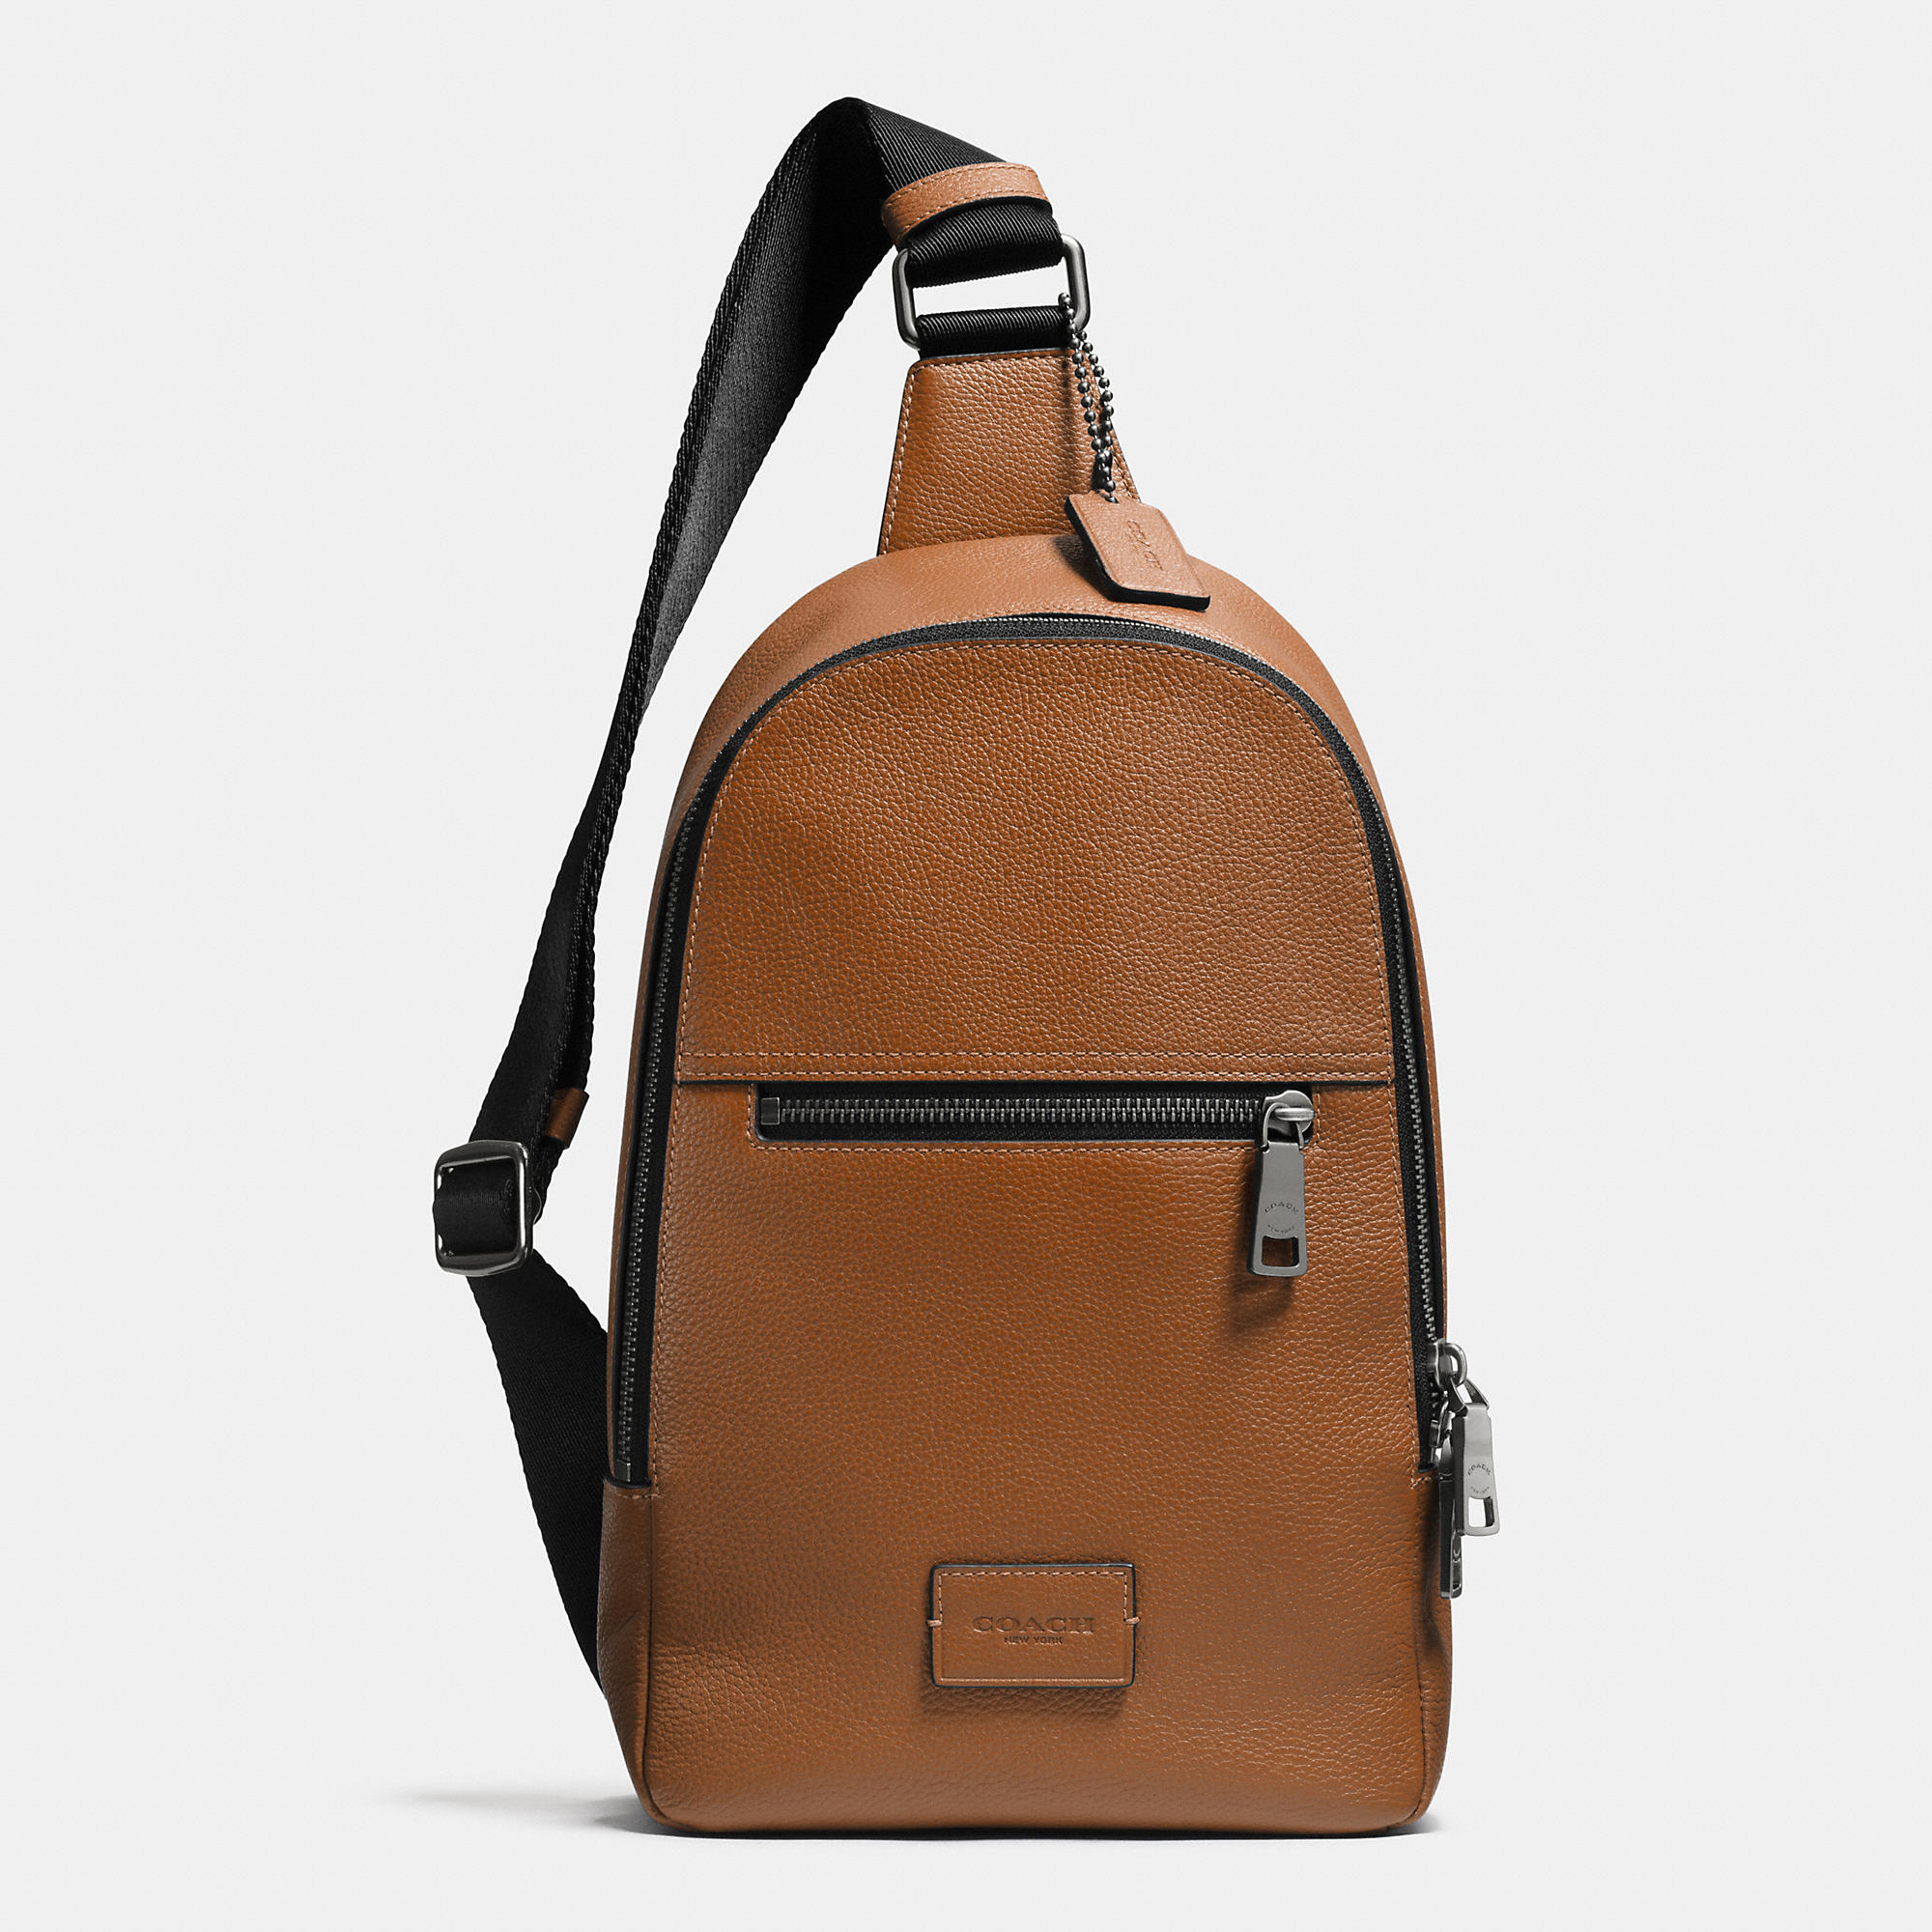 46826d4b7e38 Lyst - COACH Campus Pack In Pebble Leather in Brown for Men